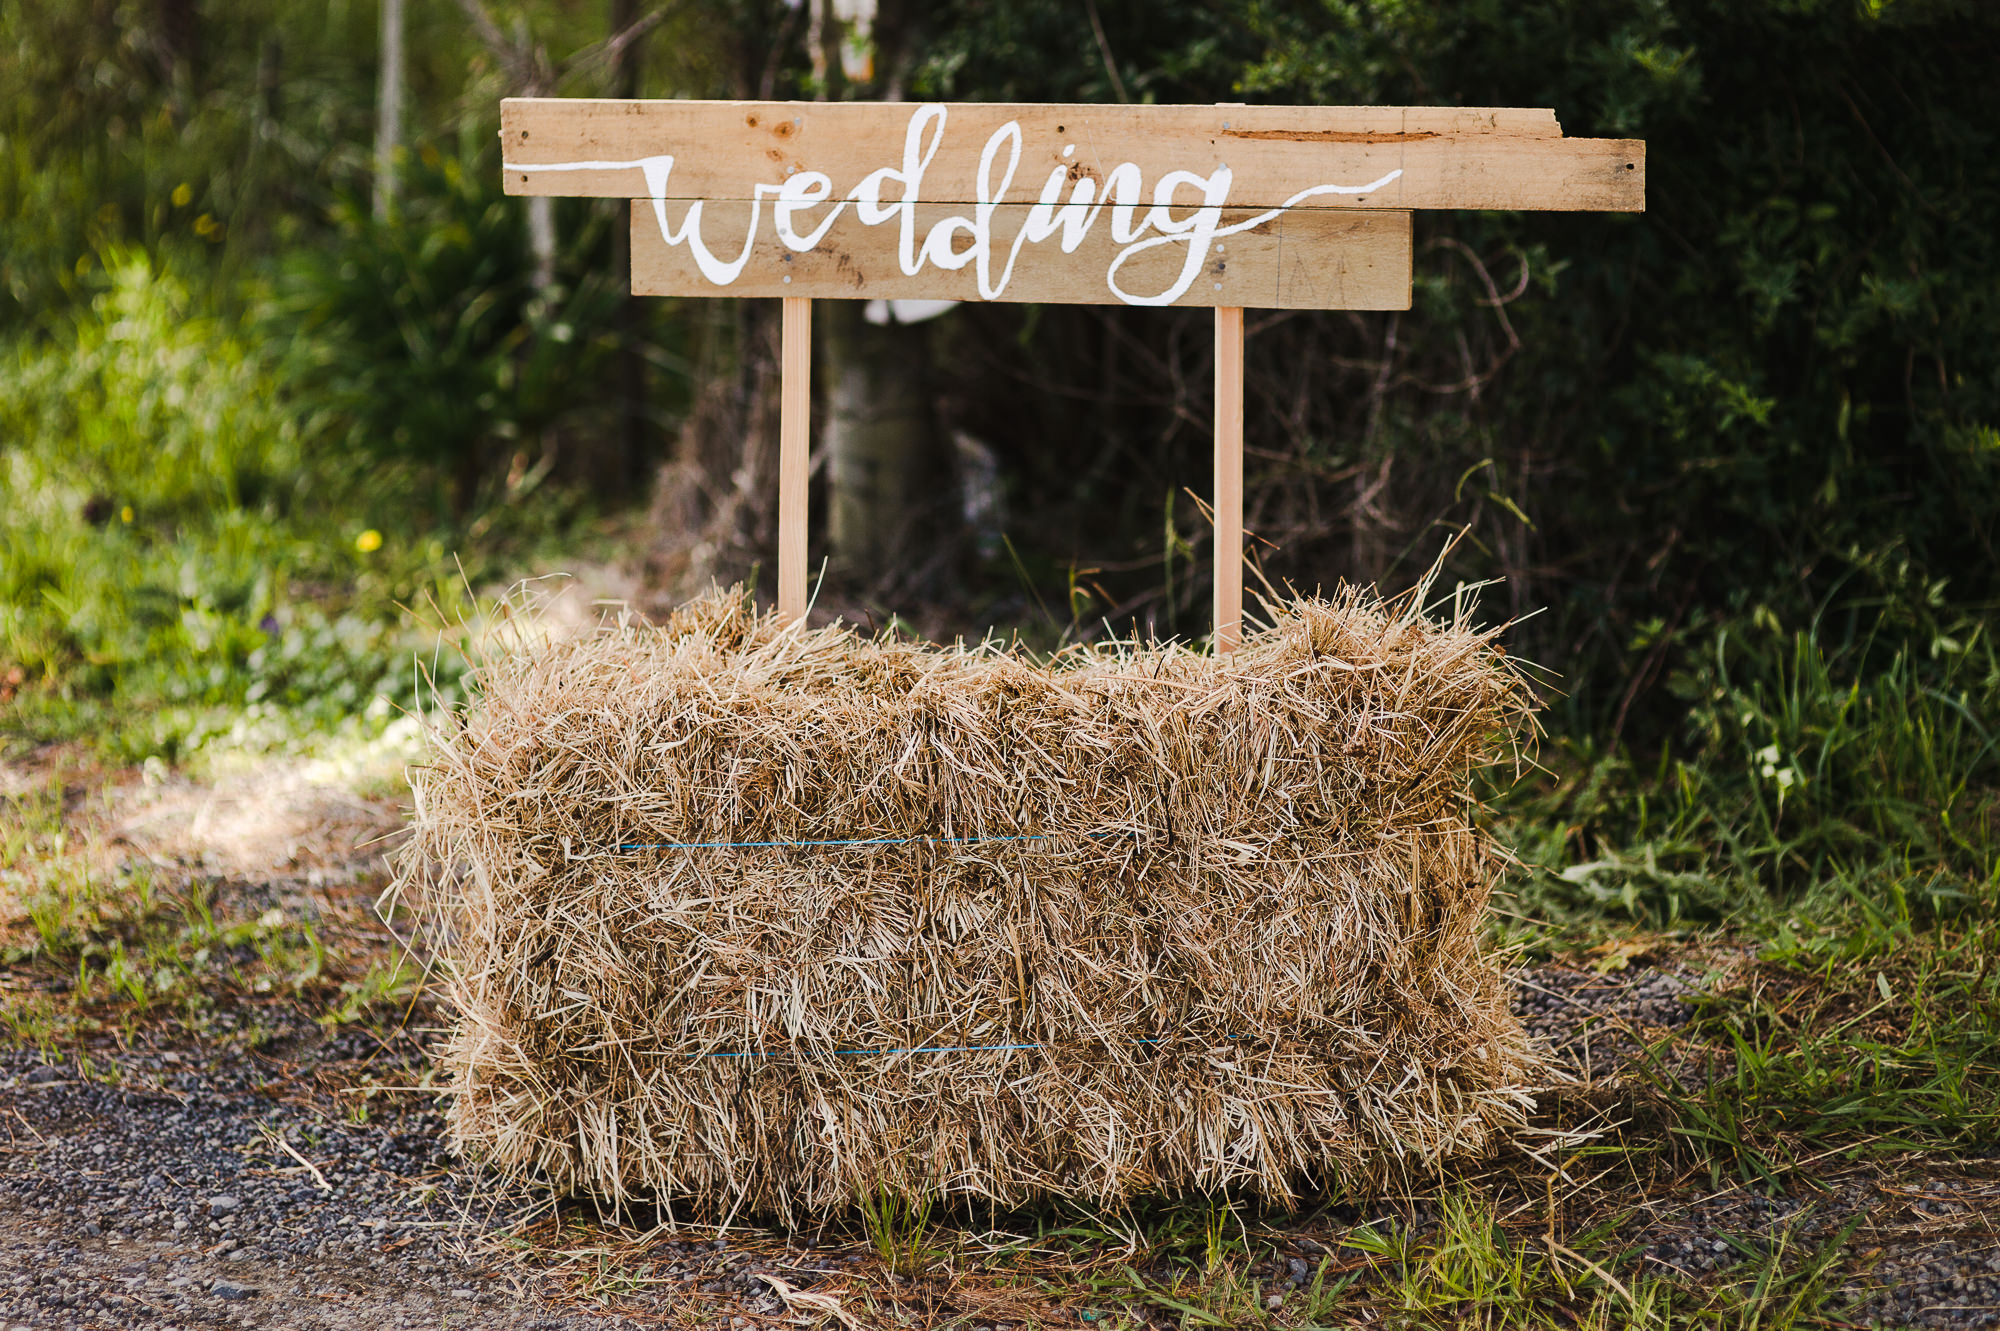 4 Wedding sign in hay bale styling.jpg